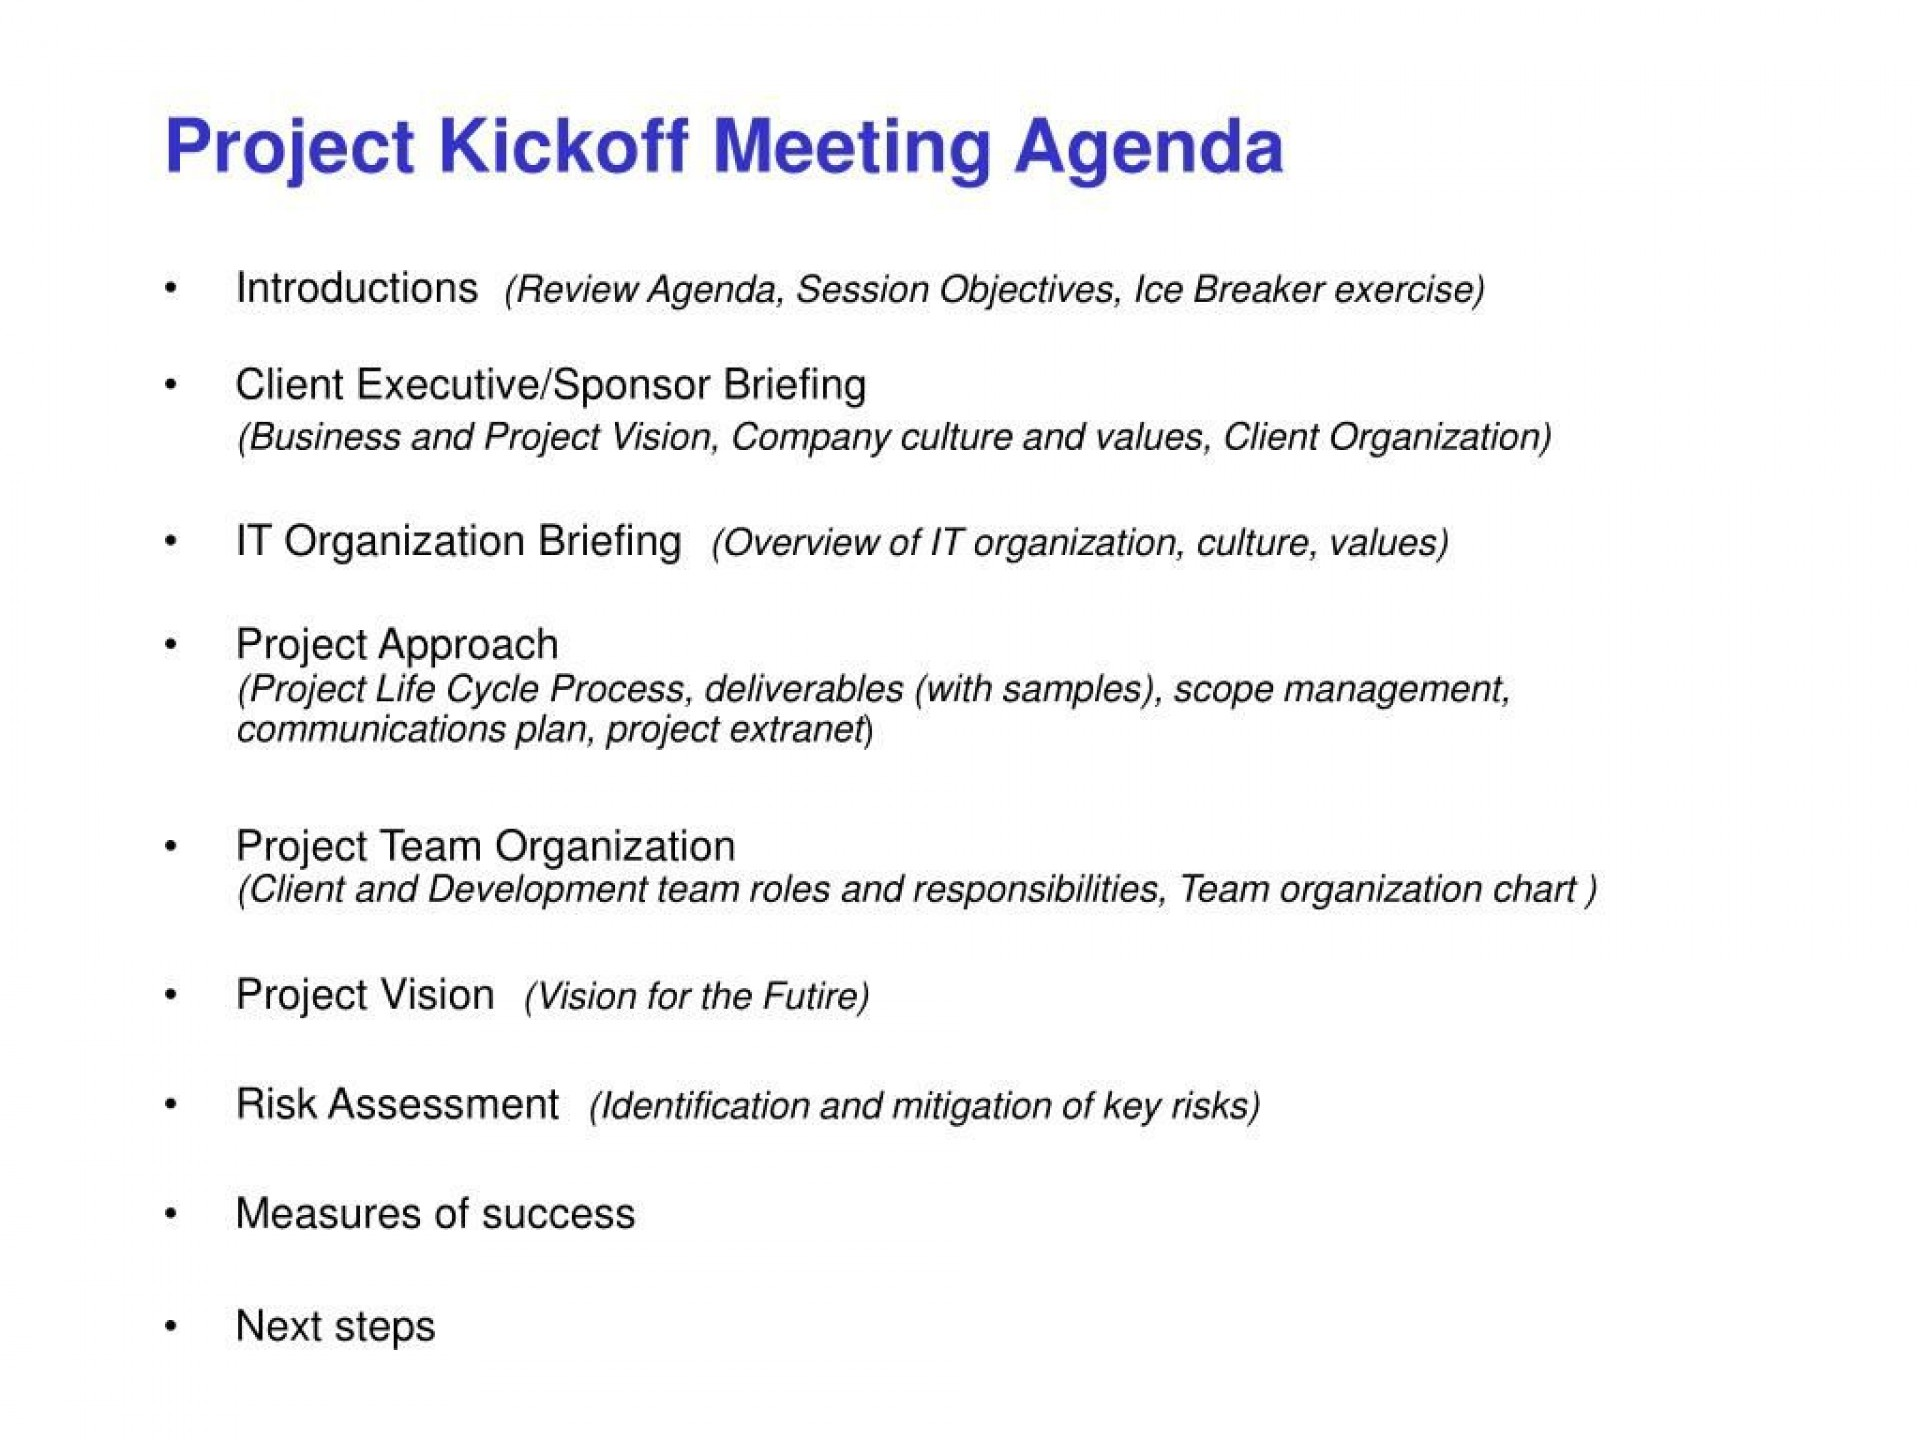 009 Staggering Project Management Kick Off Meeting Agenda Template Photo  Kickoff1920